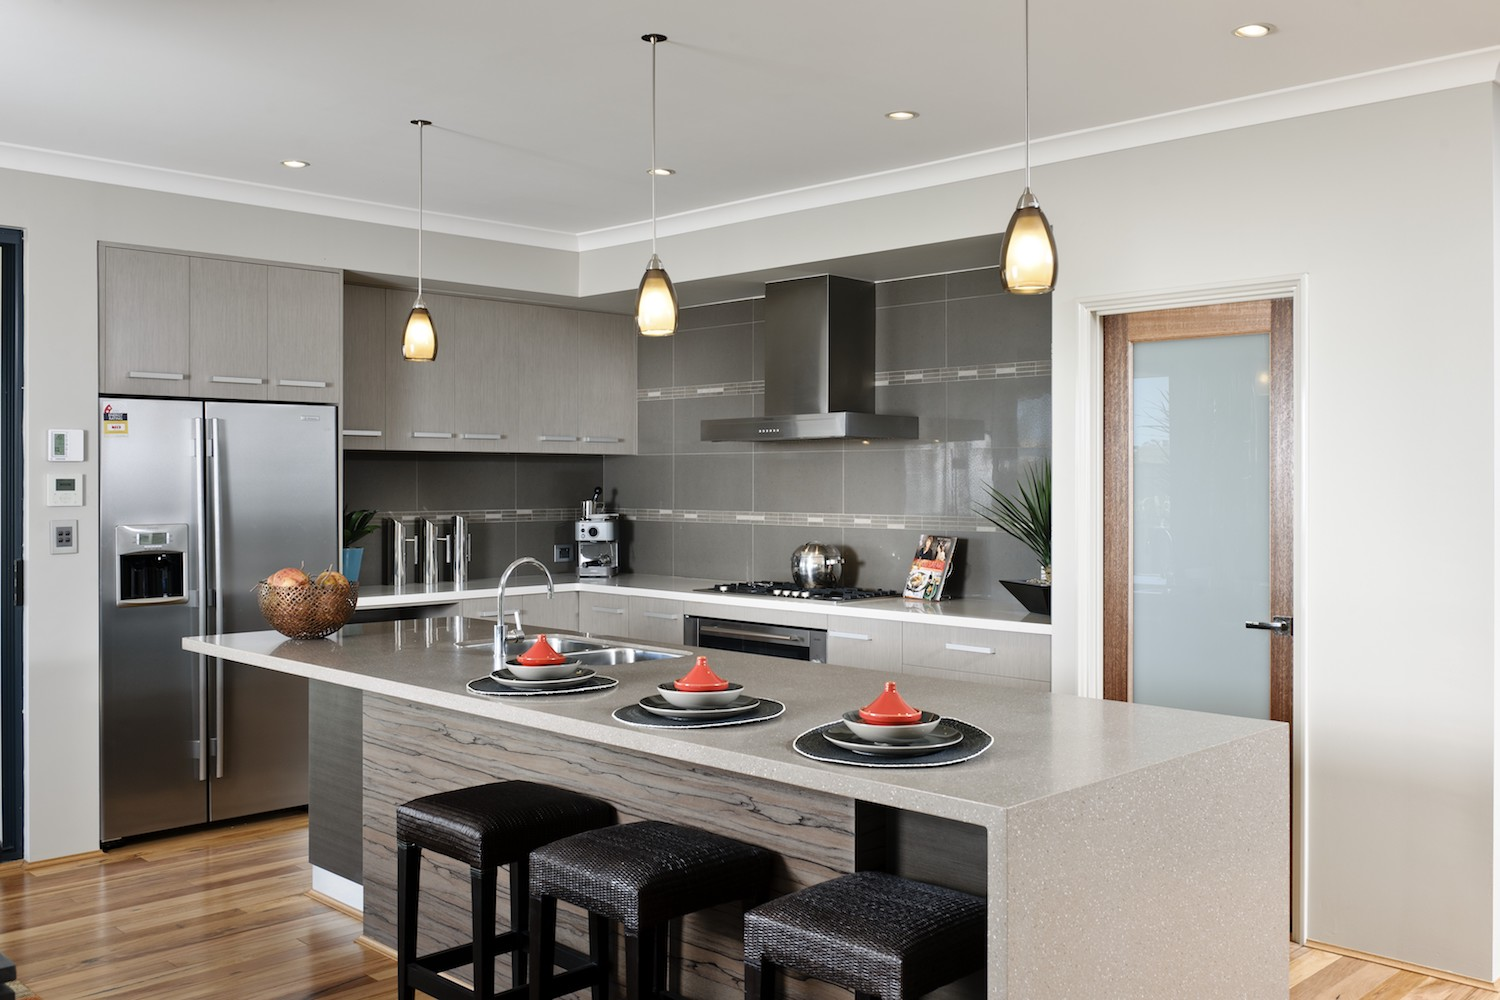 WA Country Builders - Toorak open-plan kitchen with waterfall edge island bench-top